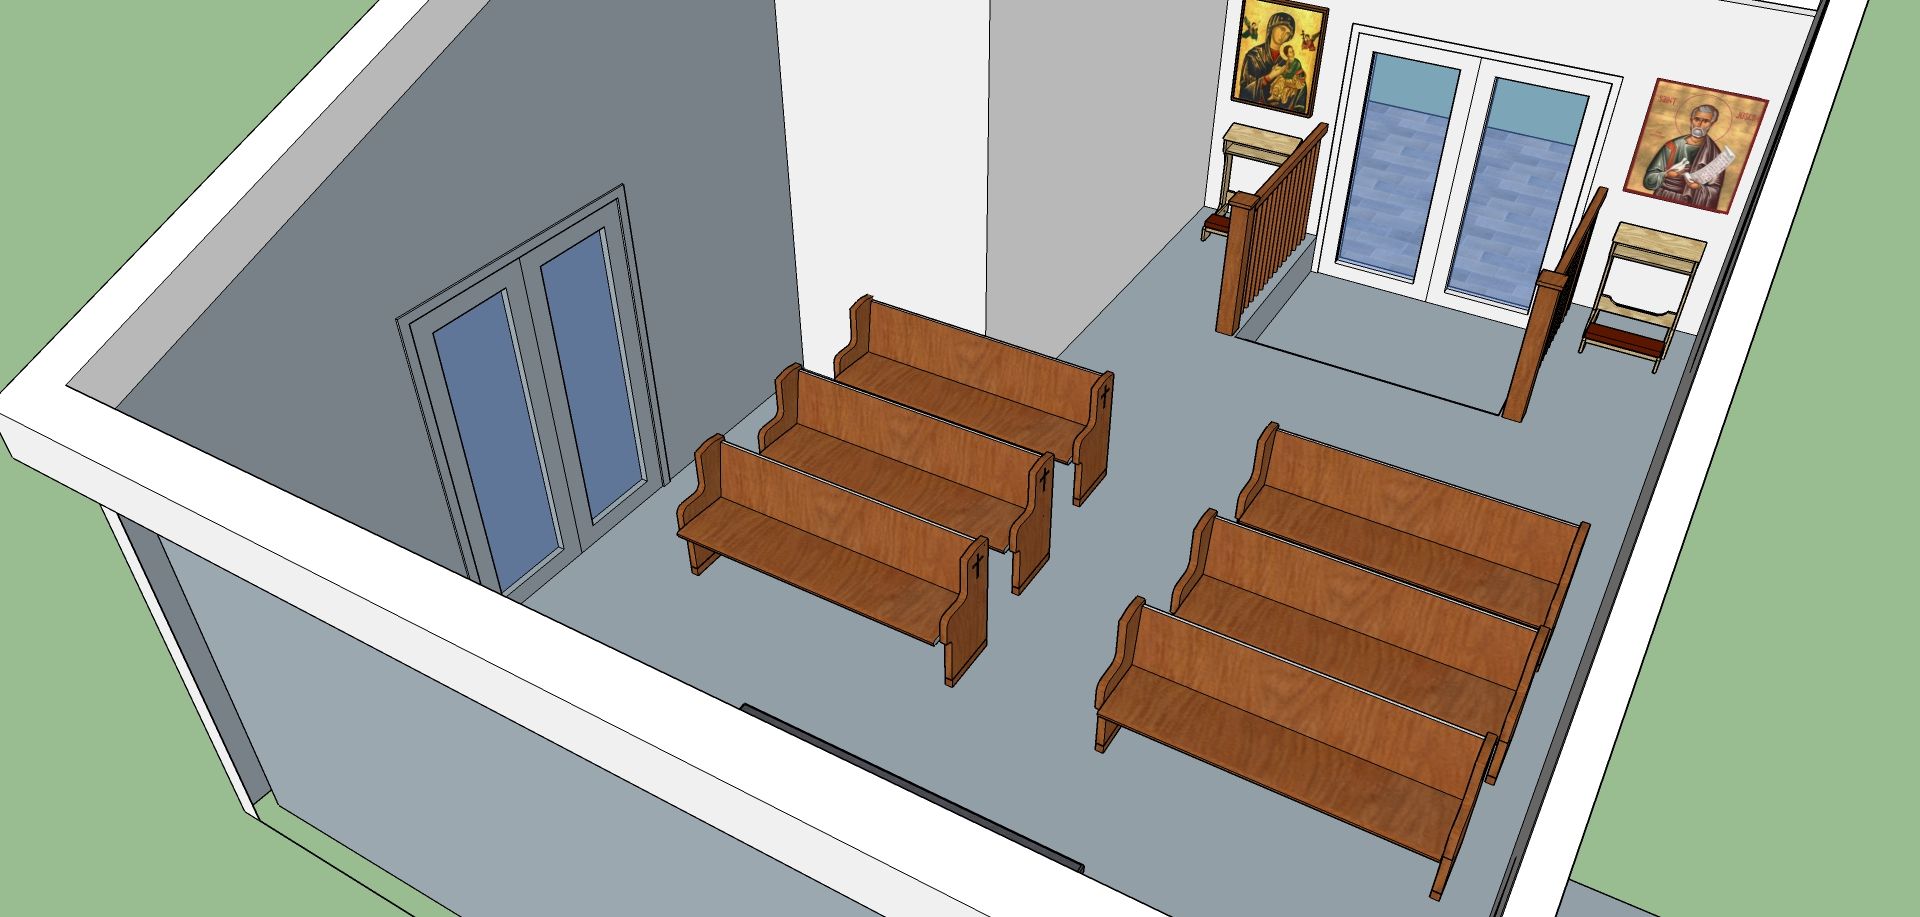 Proposed Renovations